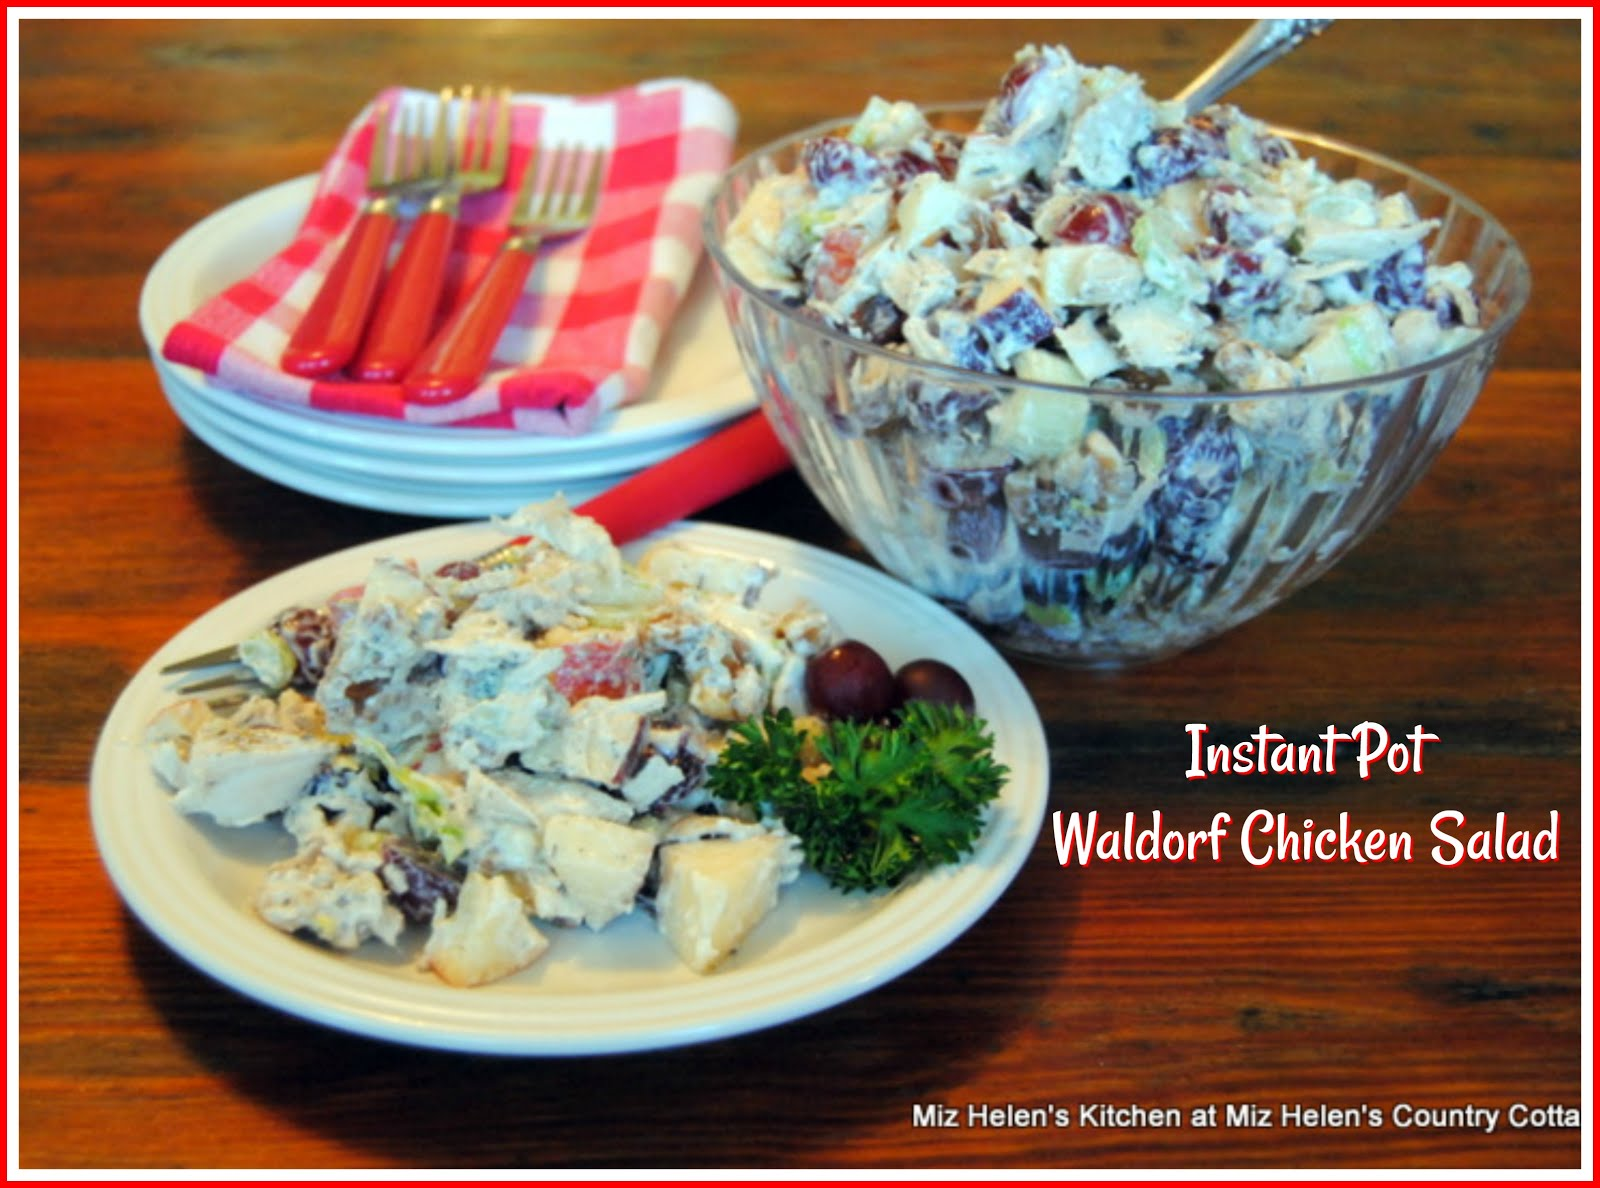 Instant Pot Waldorf Chicken Salad